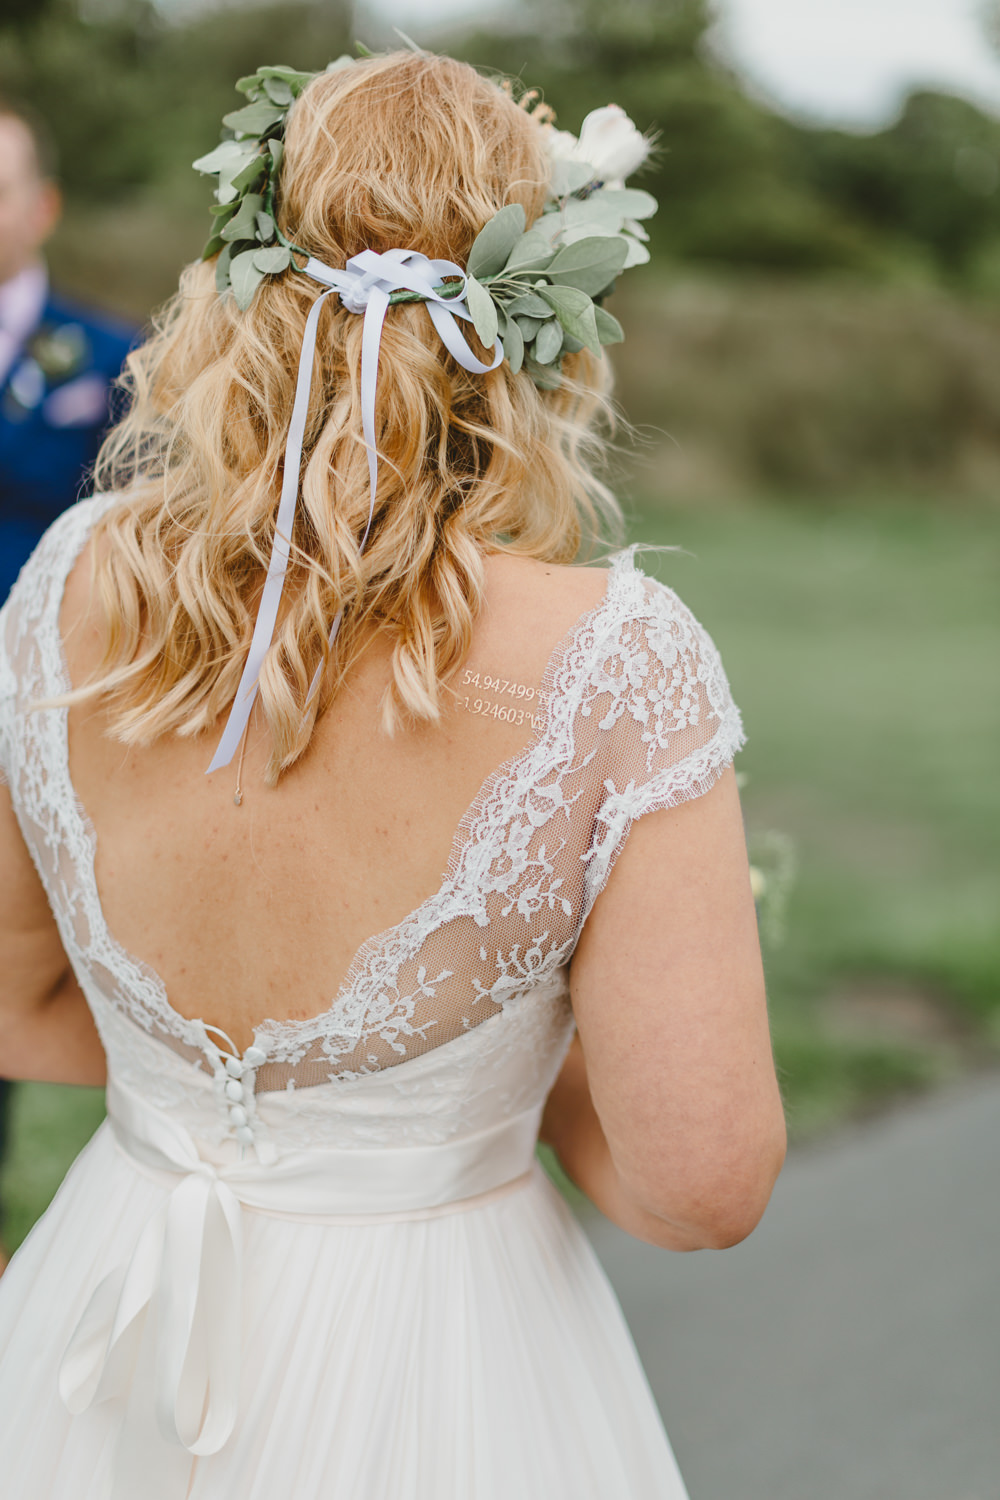 Dress Gown Bride Bridal Naomi Neoh A Line Lace Top Cap Sleeves Flower Crown Wylam Brewery Wedding Amy Lou Photography